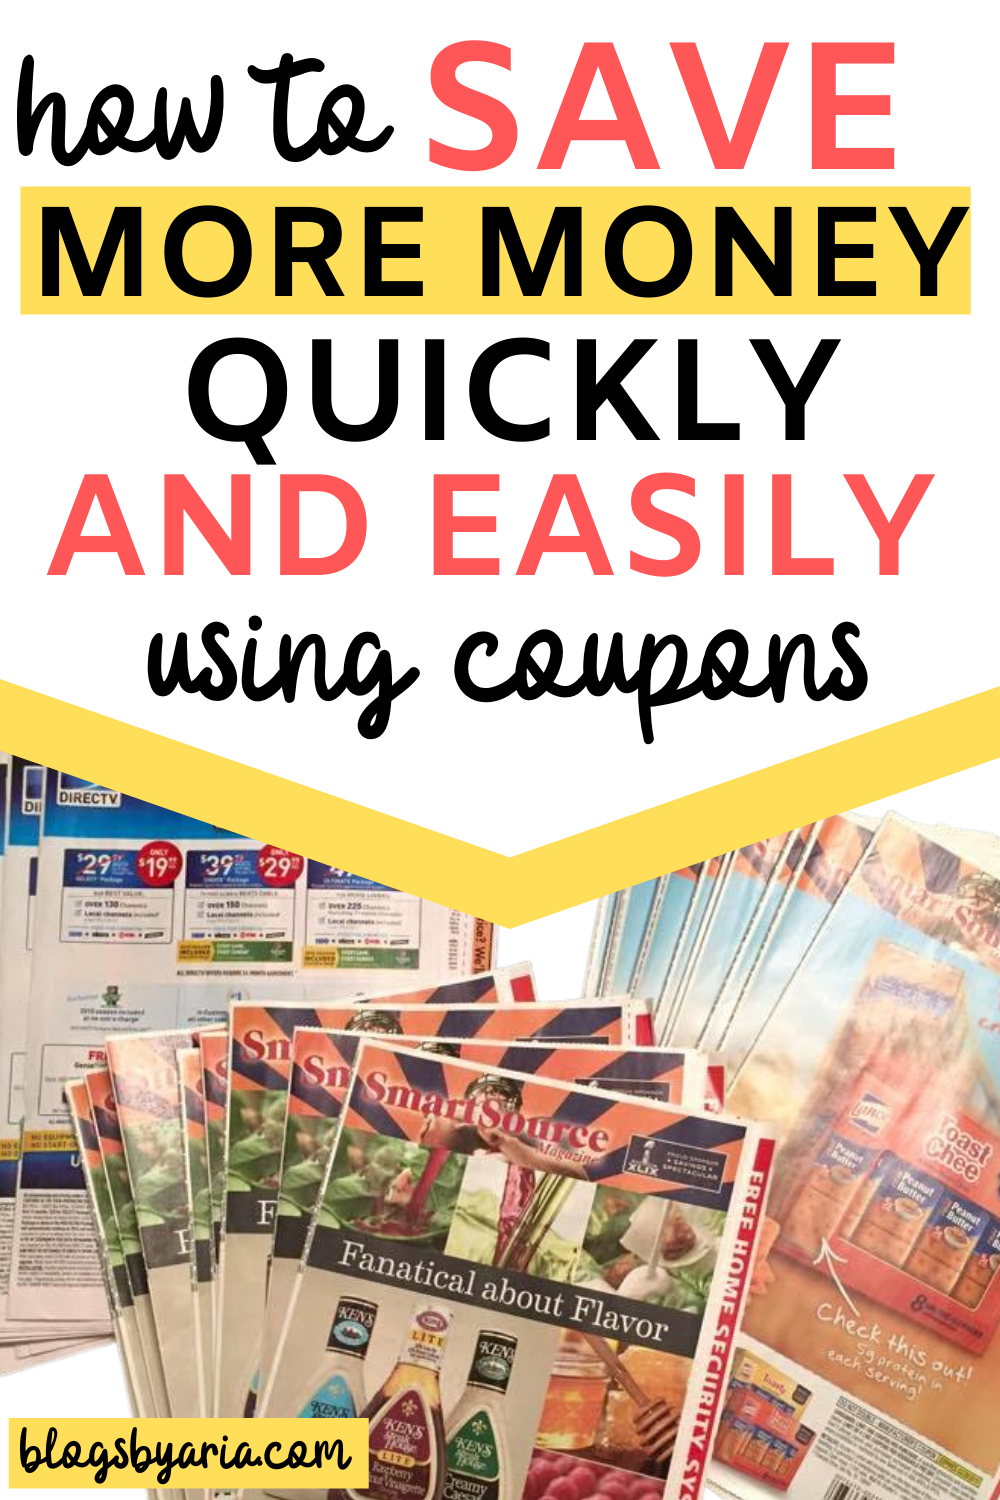 how to save more money quickly